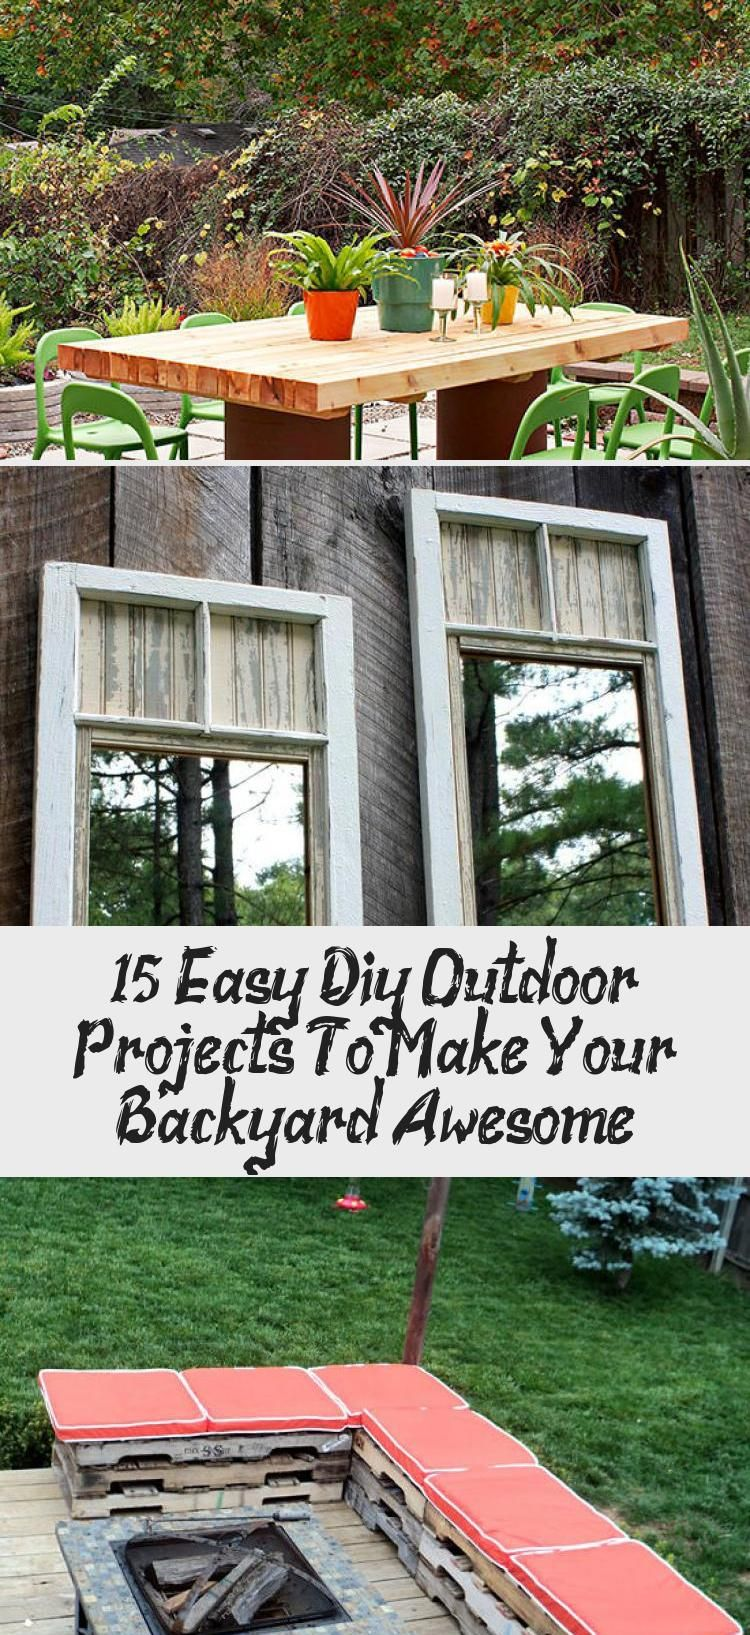 Photo of 15 Easy Diy Outdoor Projects To Make Your Backyard Awesome – Pinokyo